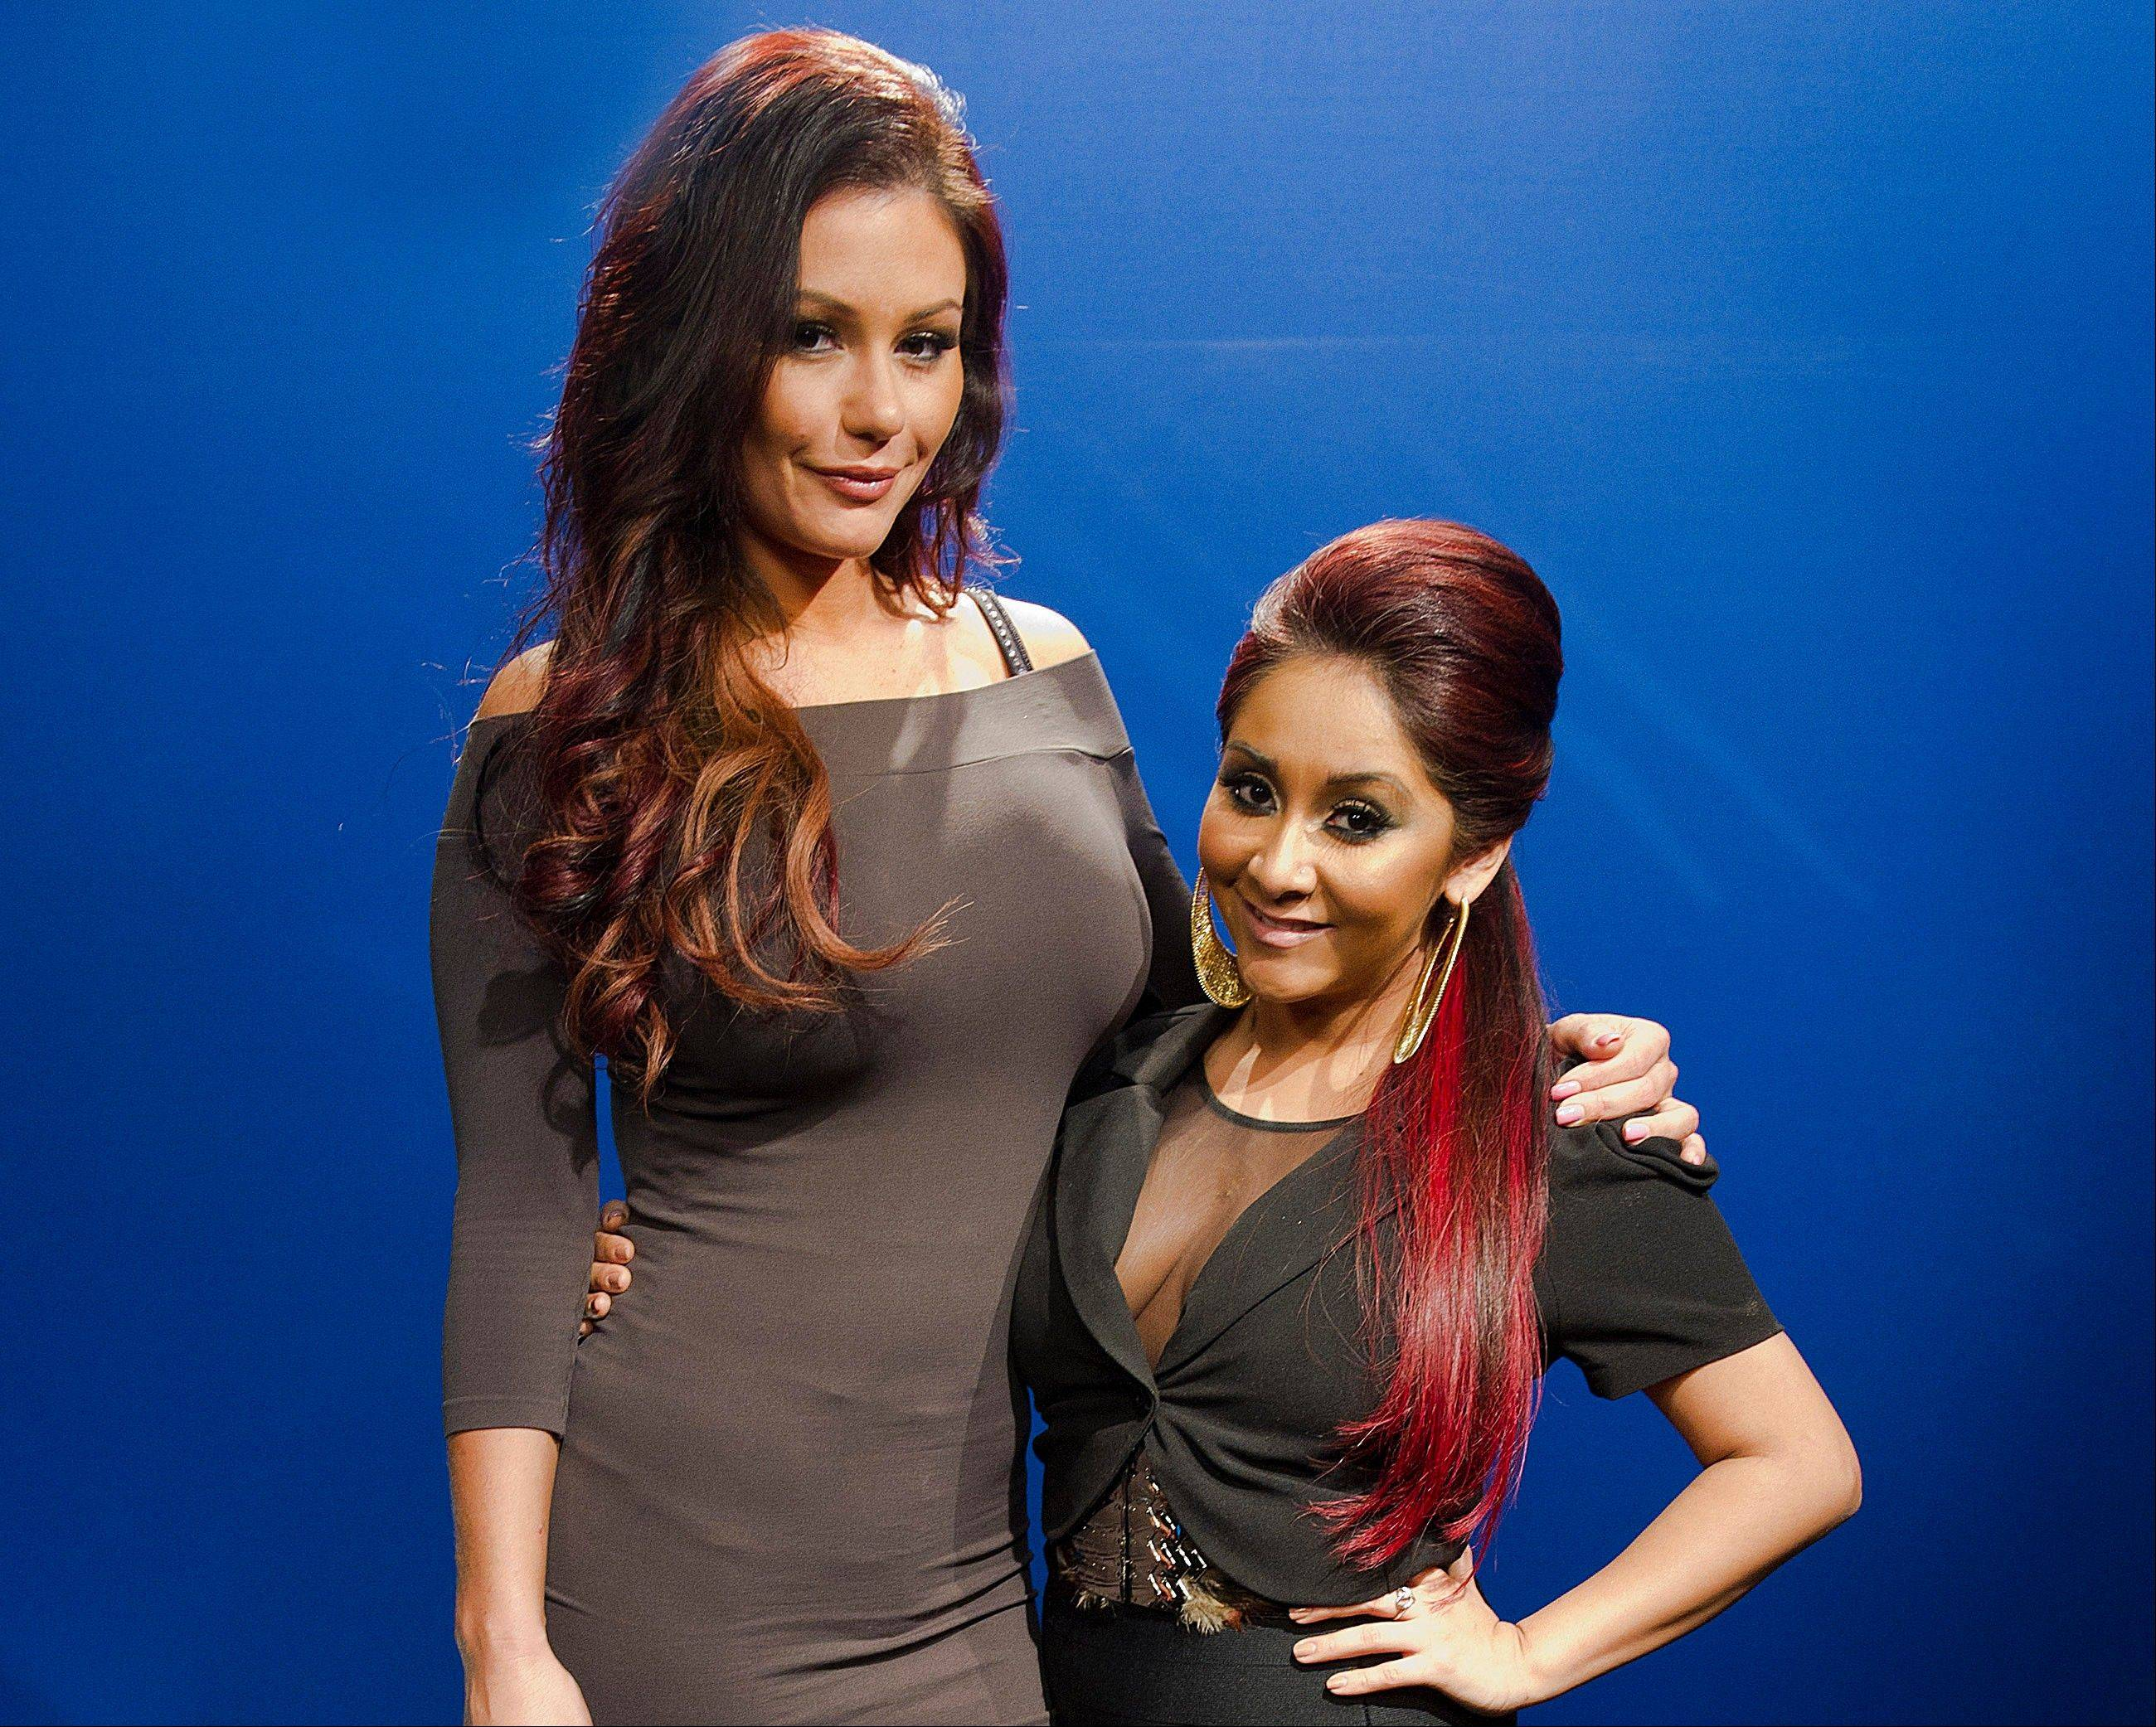 The Point Pleasant Beach Council in New Jersey unanimously voted against 495 Productions� request to tape the �Jersey Shore� spinoff featuring Jenni �JWoww� Farley, left, and Nicole �Snooki� Polizzi.